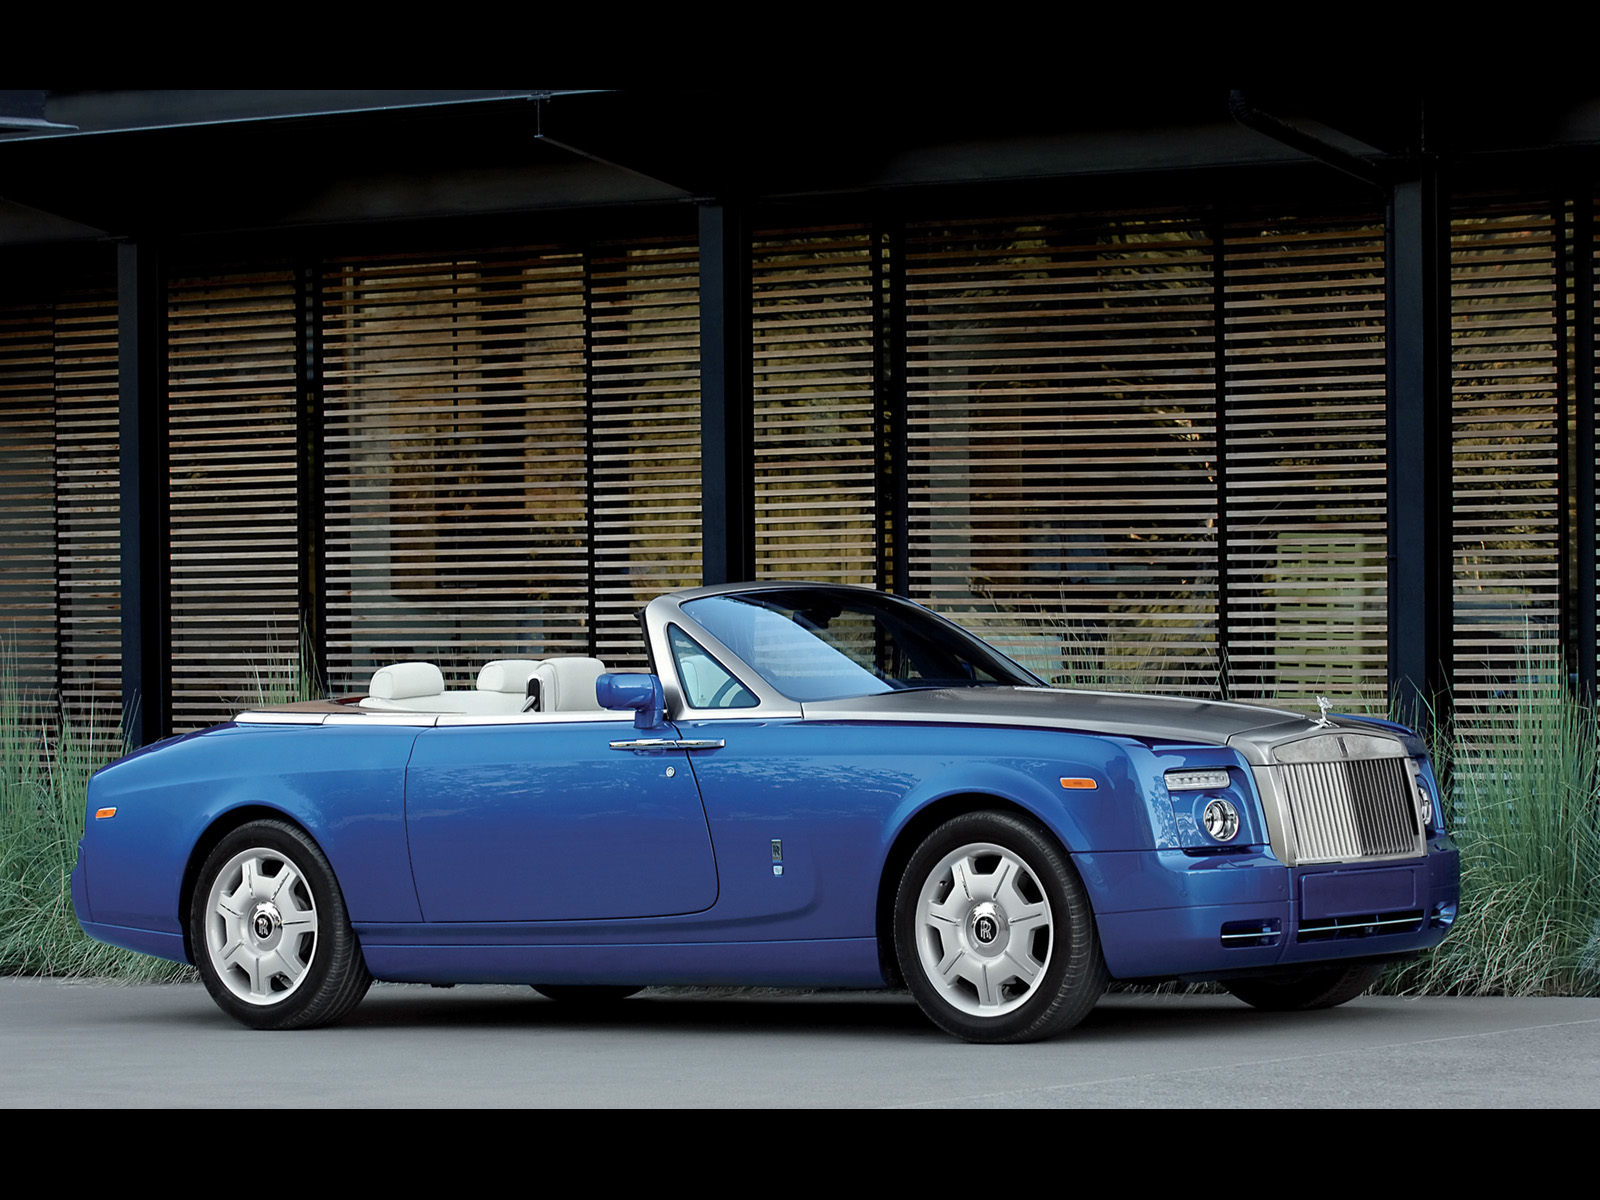 Rolls royce Phantom Drophead Coupe #10